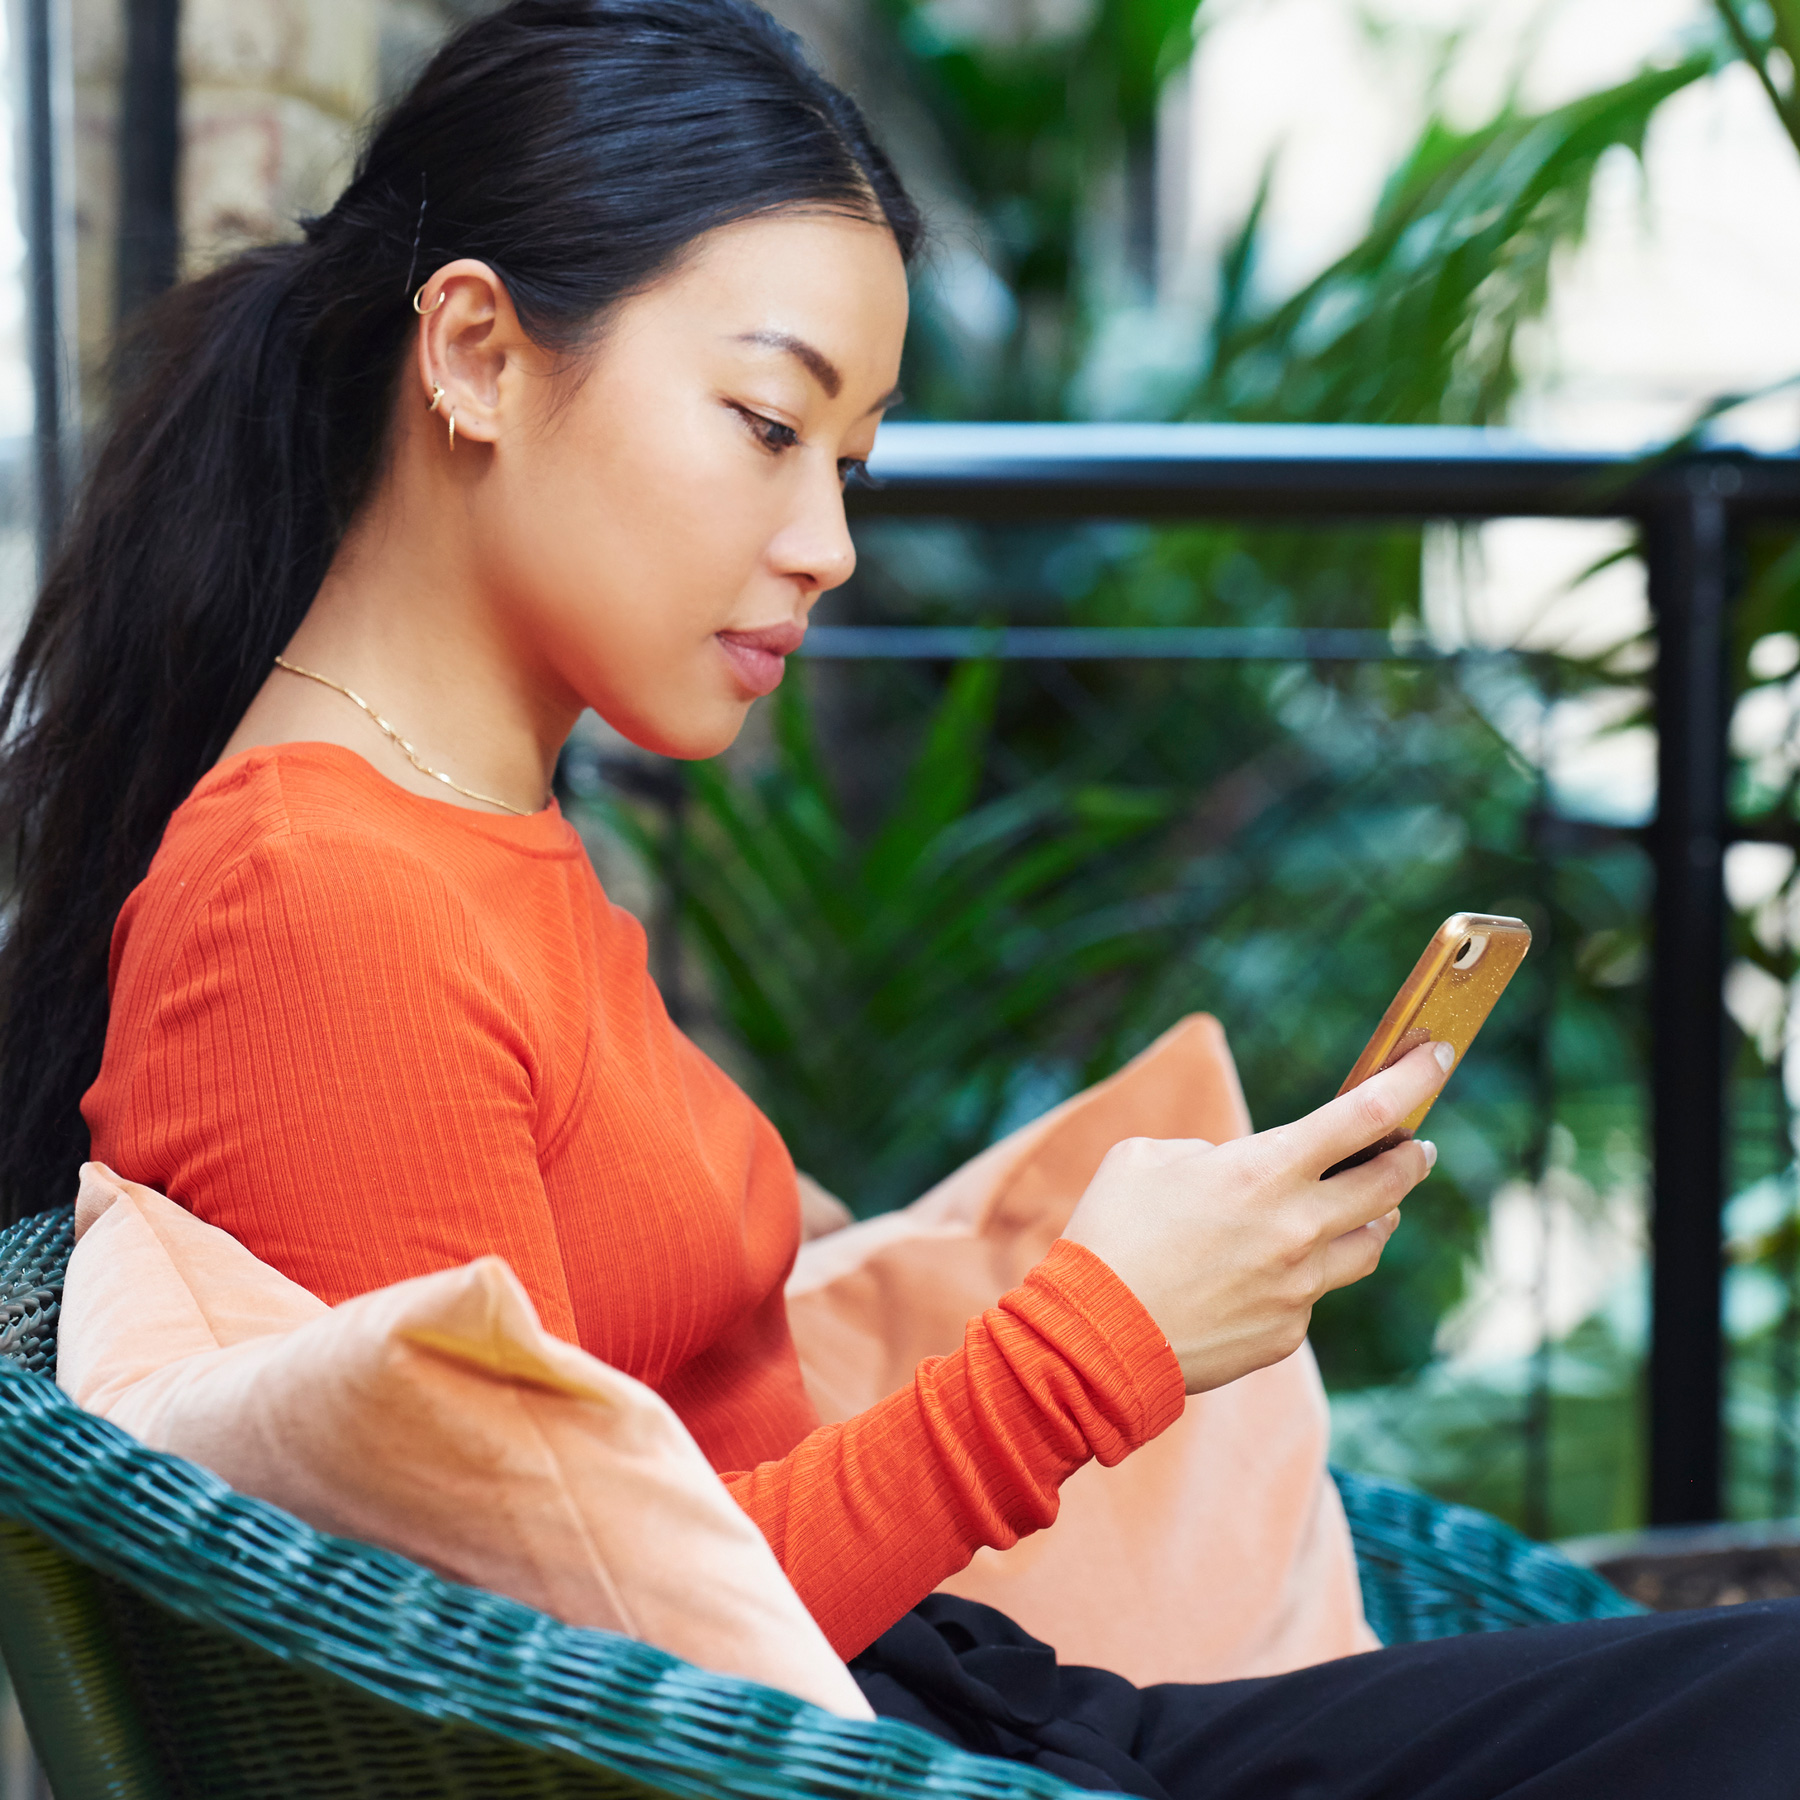 How to break bad habits (addicted to your phone), woman looking at smart phone